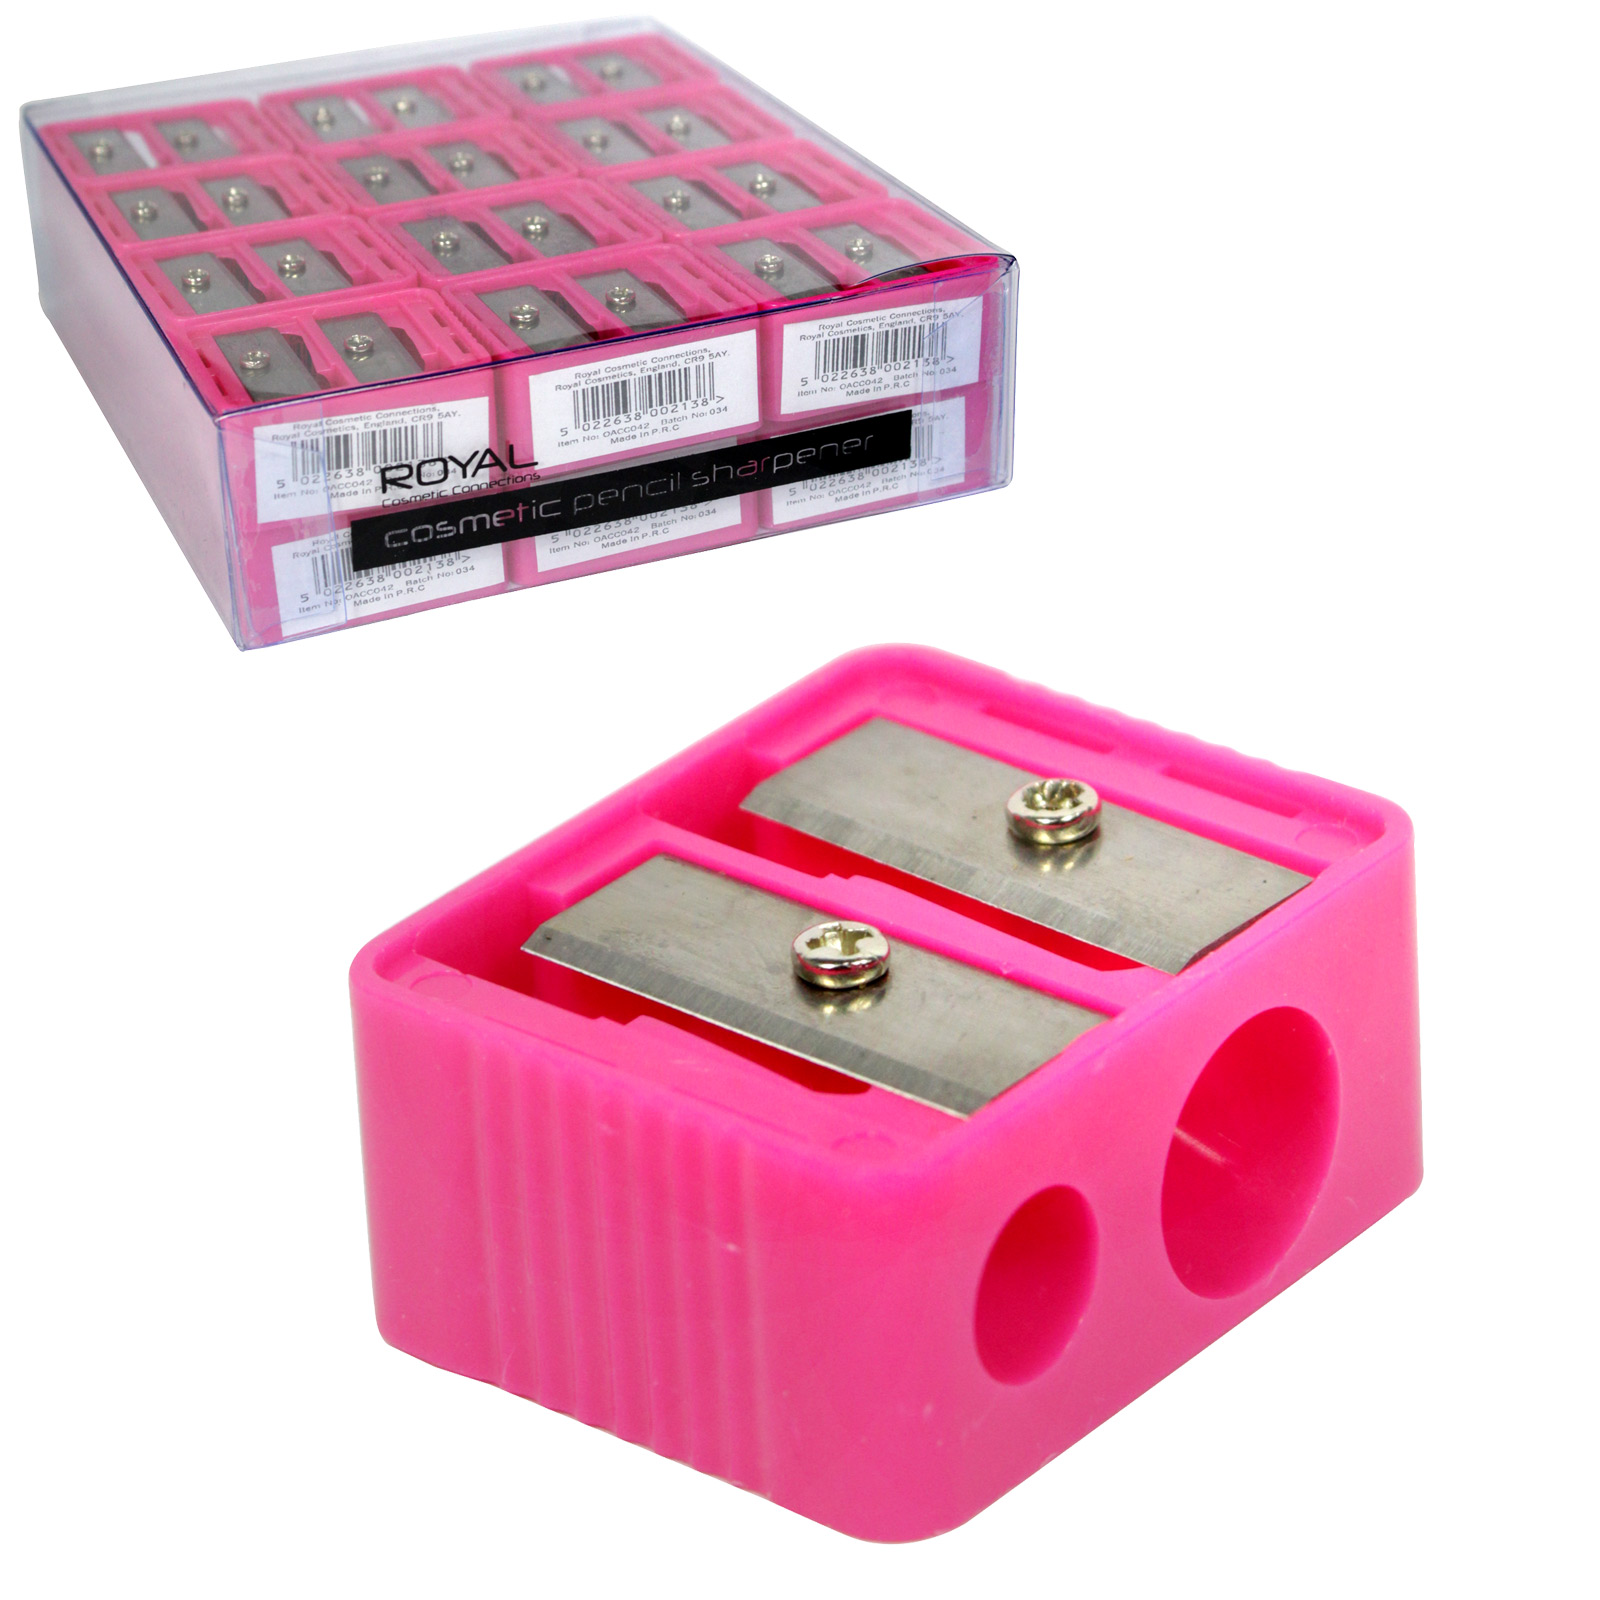 ROYAL DOUBLE COSMETIC SHARPENER X24